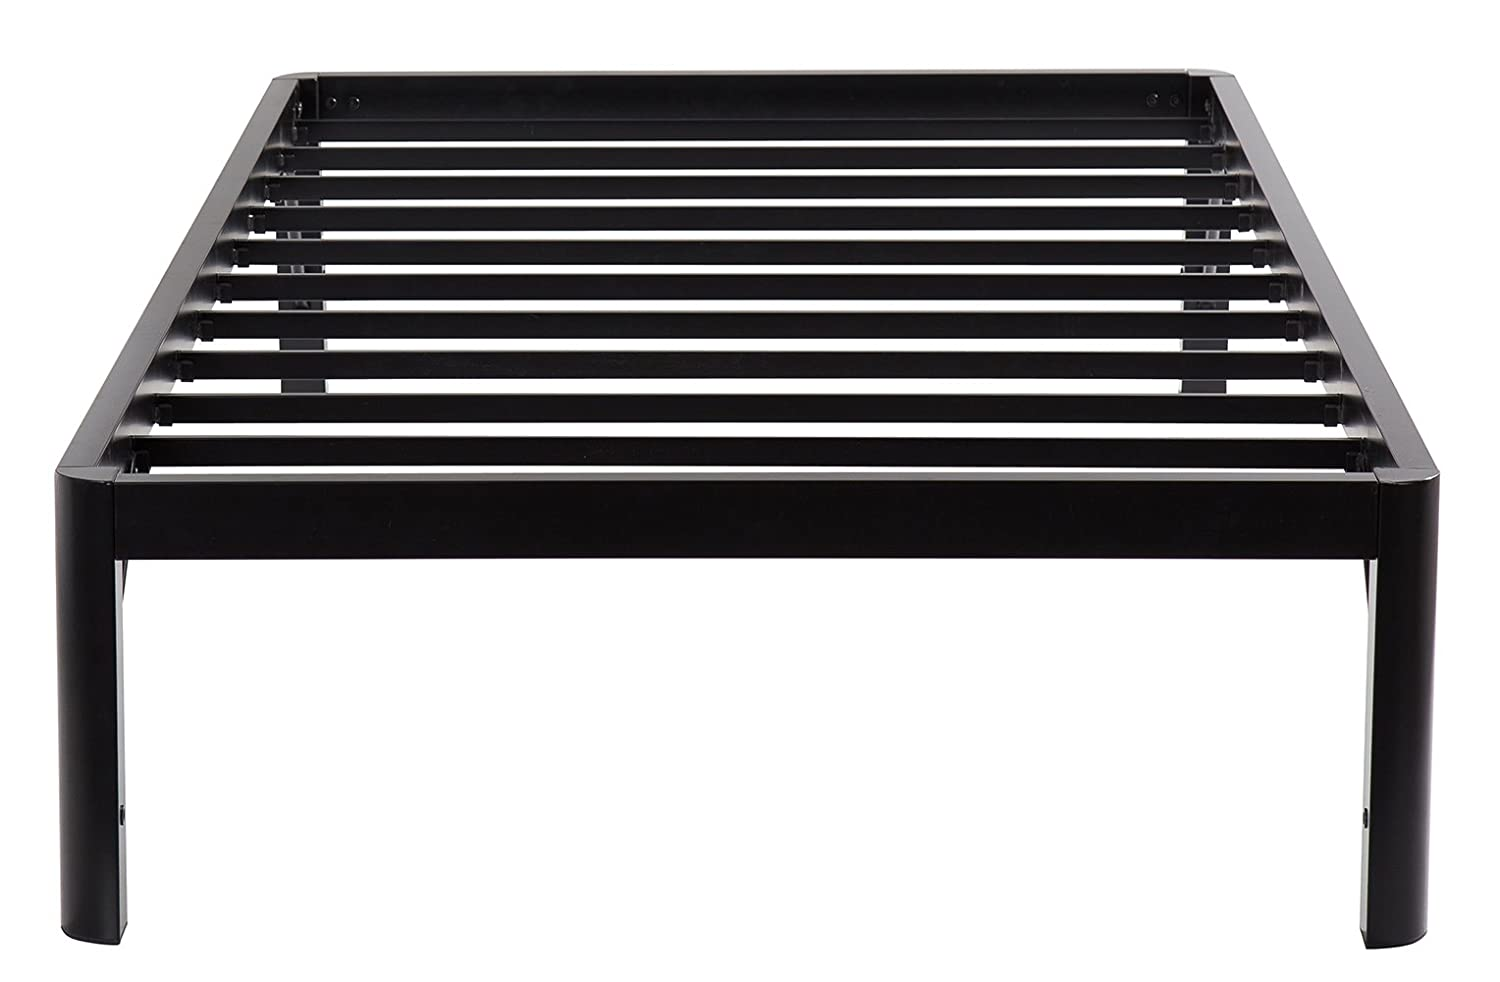 Olee Sleep 14 inch Tall Round Edge Steel Slat Non-slip Support Bed Frame S-3500, OLR14BF10T Twin